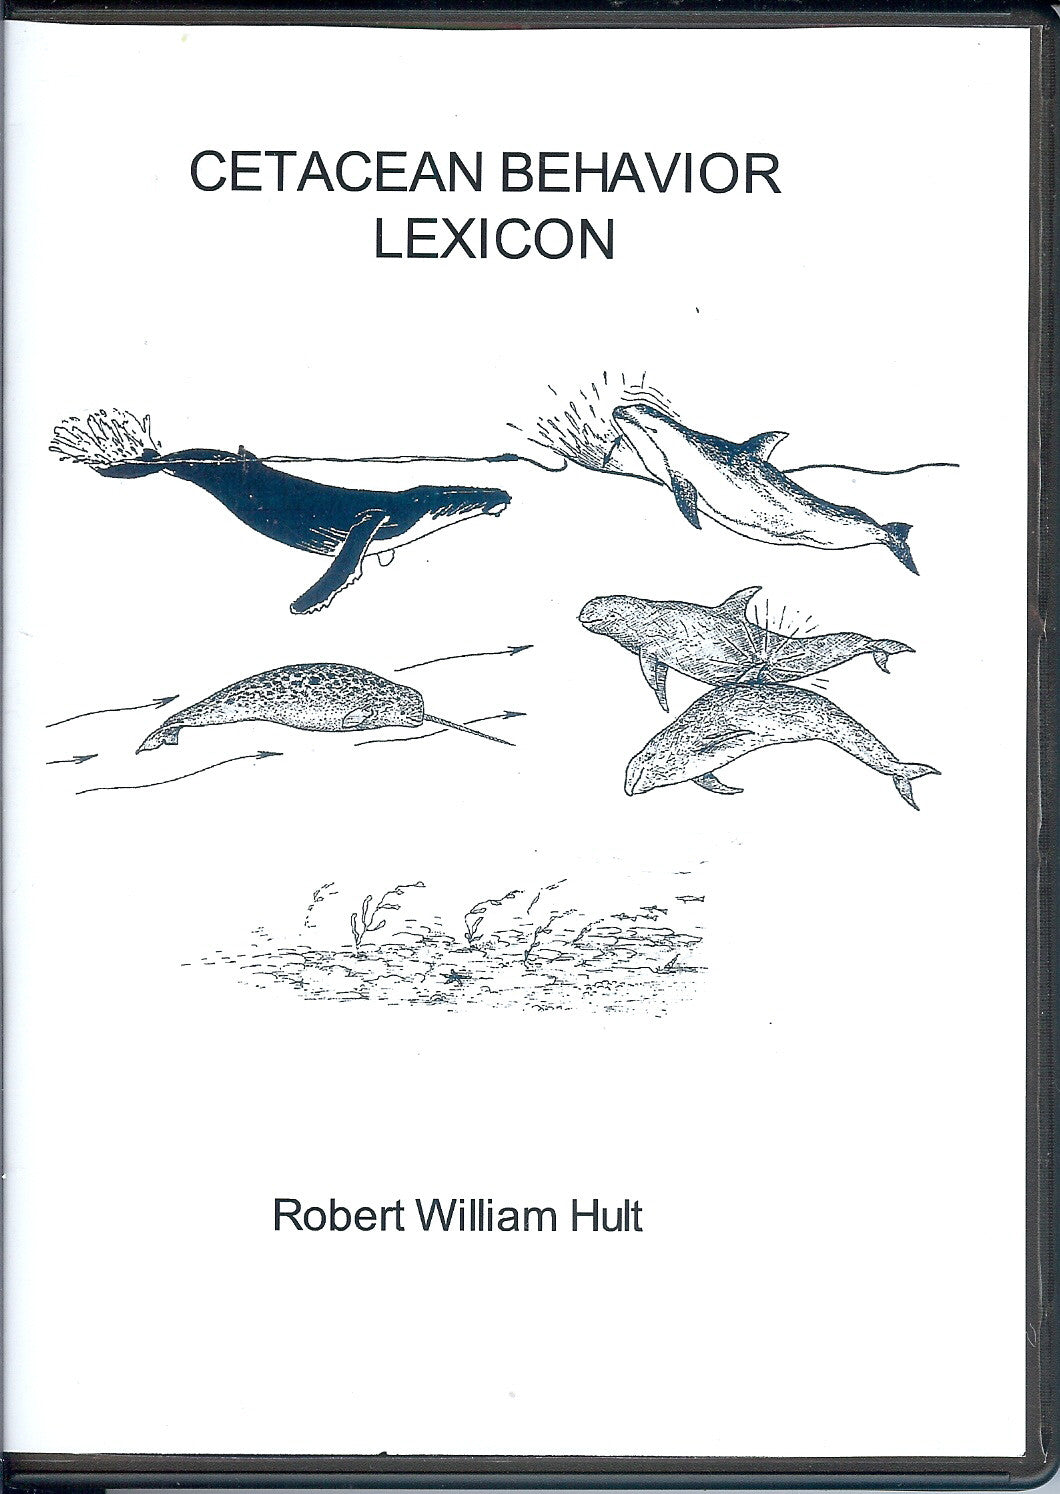 Cetacean Behavior Lexicon